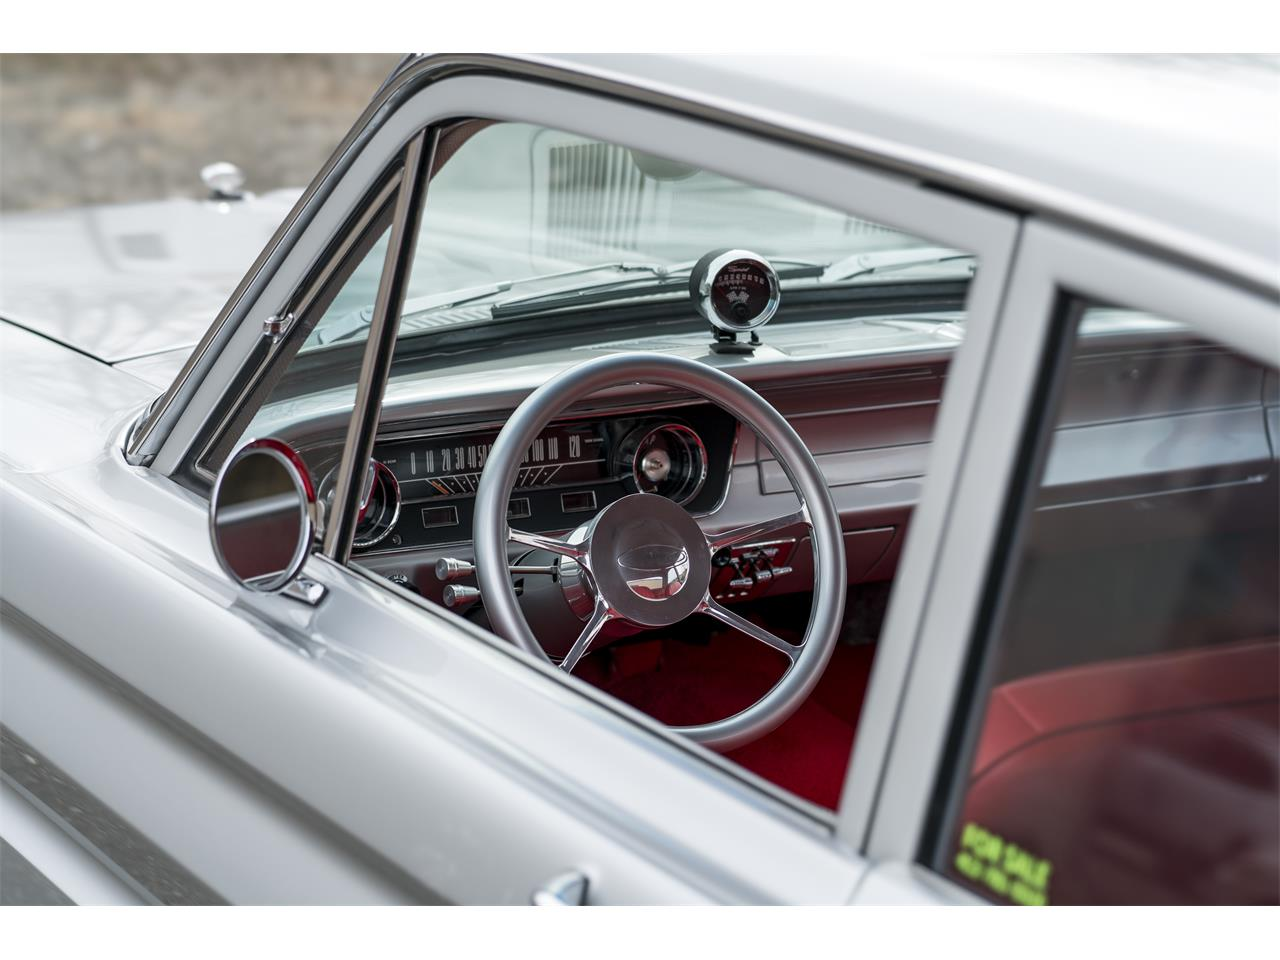 Large Picture of 1964 Ford Falcon located in Pittsburgh Pennsylvania - $54,000.00 - PZS8